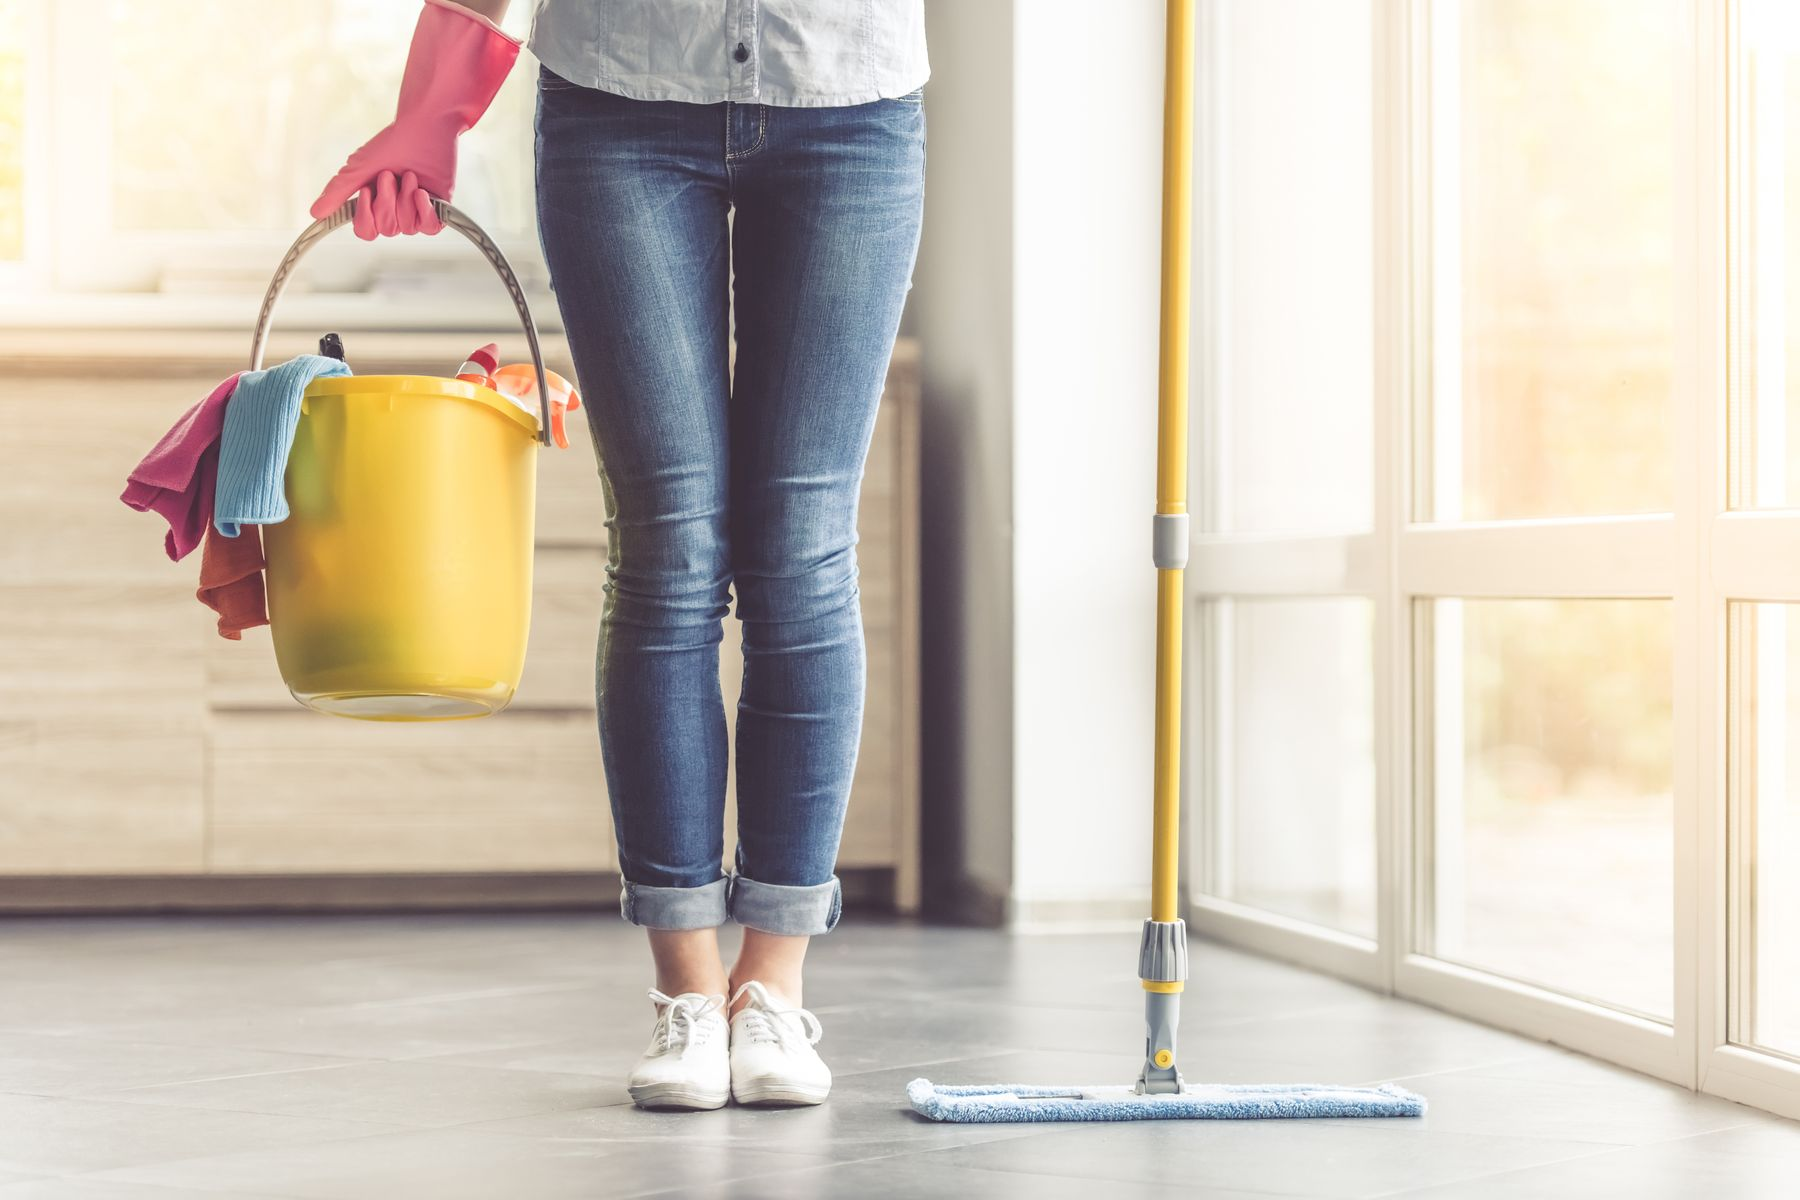 woman in jeans holding bucket of cleaning supplies and mop